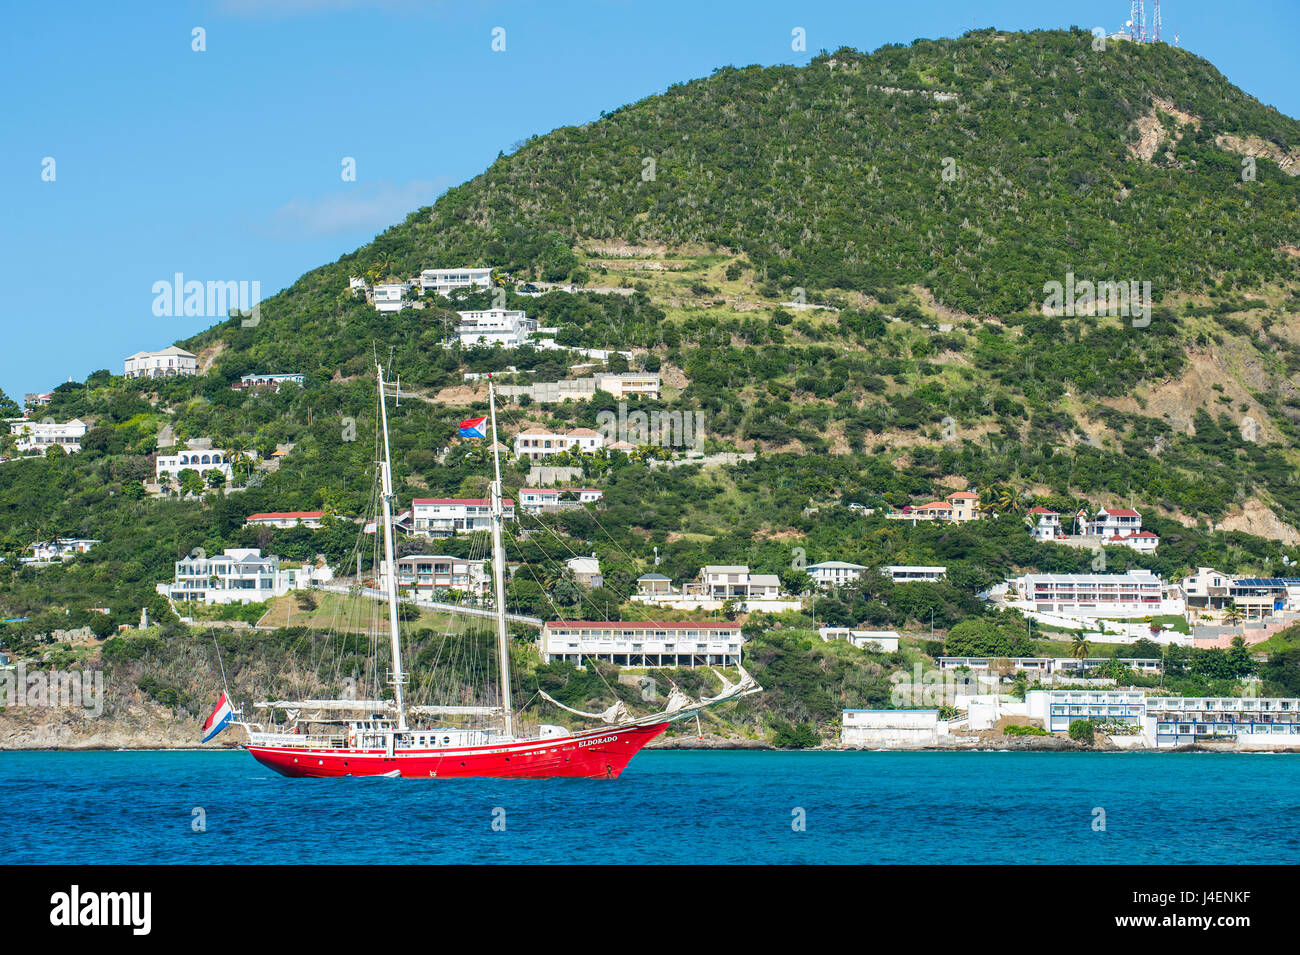 Red sailing boat in the bay of Philipsburg, Sint Maarten, West Indies, Caribbean, Central America - Stock Image